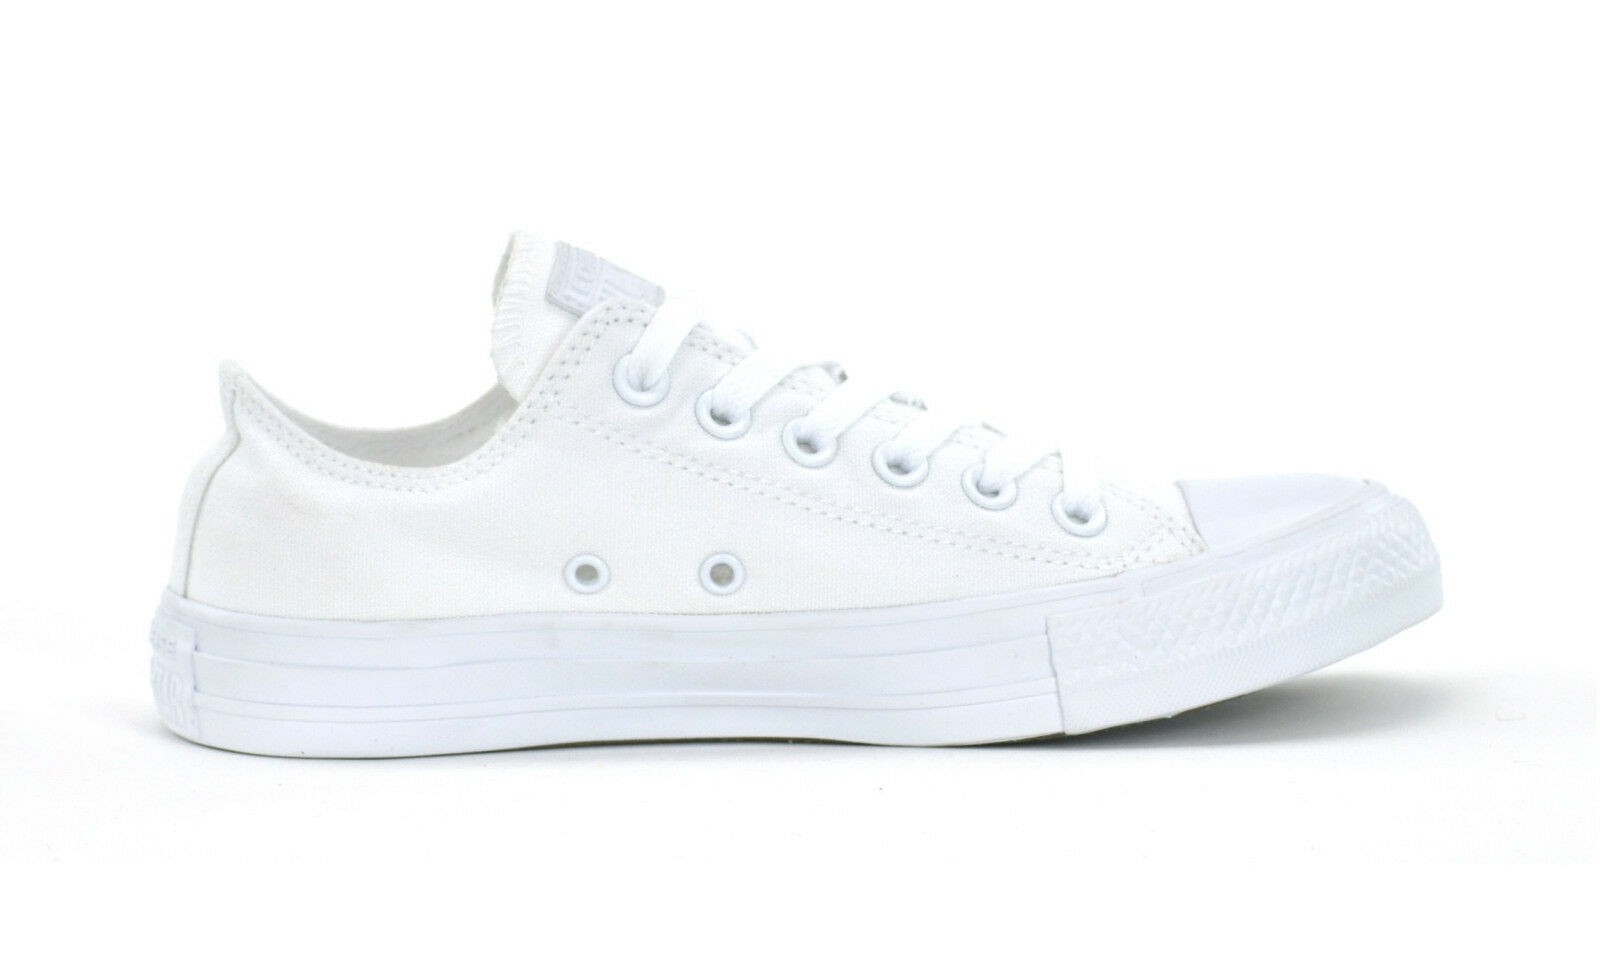 CONVERSE CONVERSE CONVERSE CT ALL STAR OX - Blanco MONOCHROME -1U647 - UNISEX ADULTS SNEAKERS  -NEW 4a450a